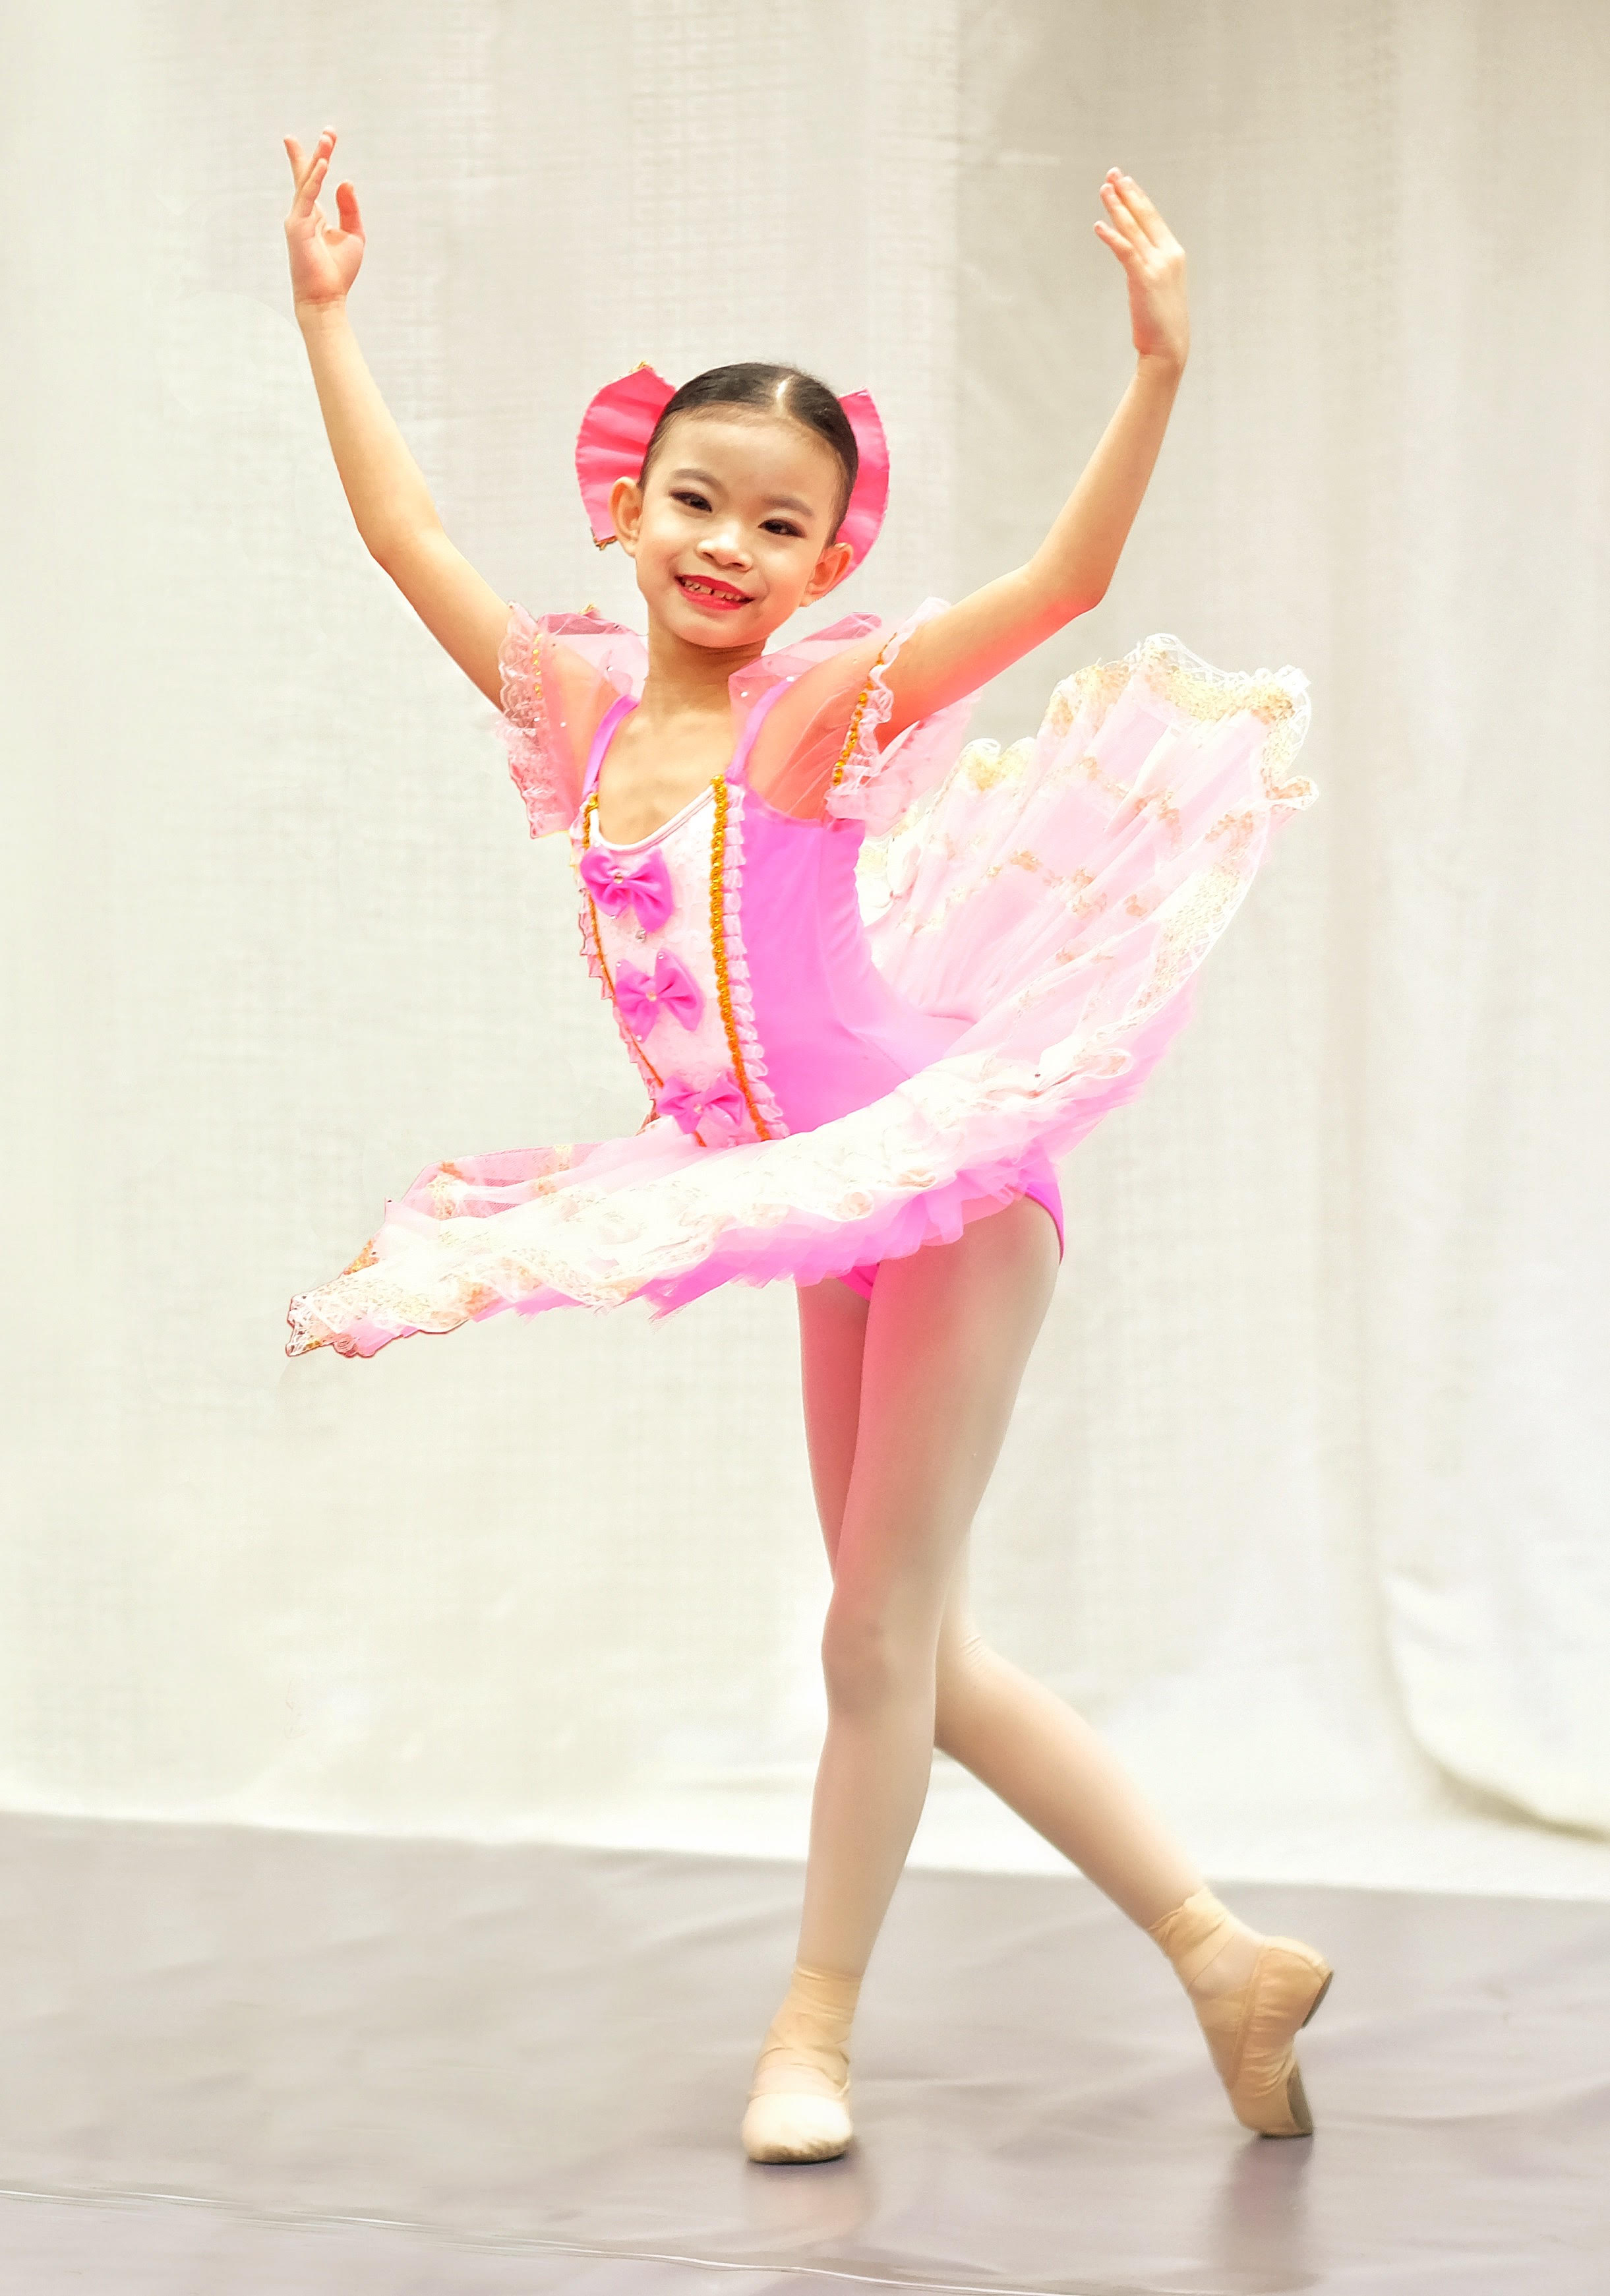 BALLERINA BAGS 5 GOLDS IN ONLINE COMPETITIONS